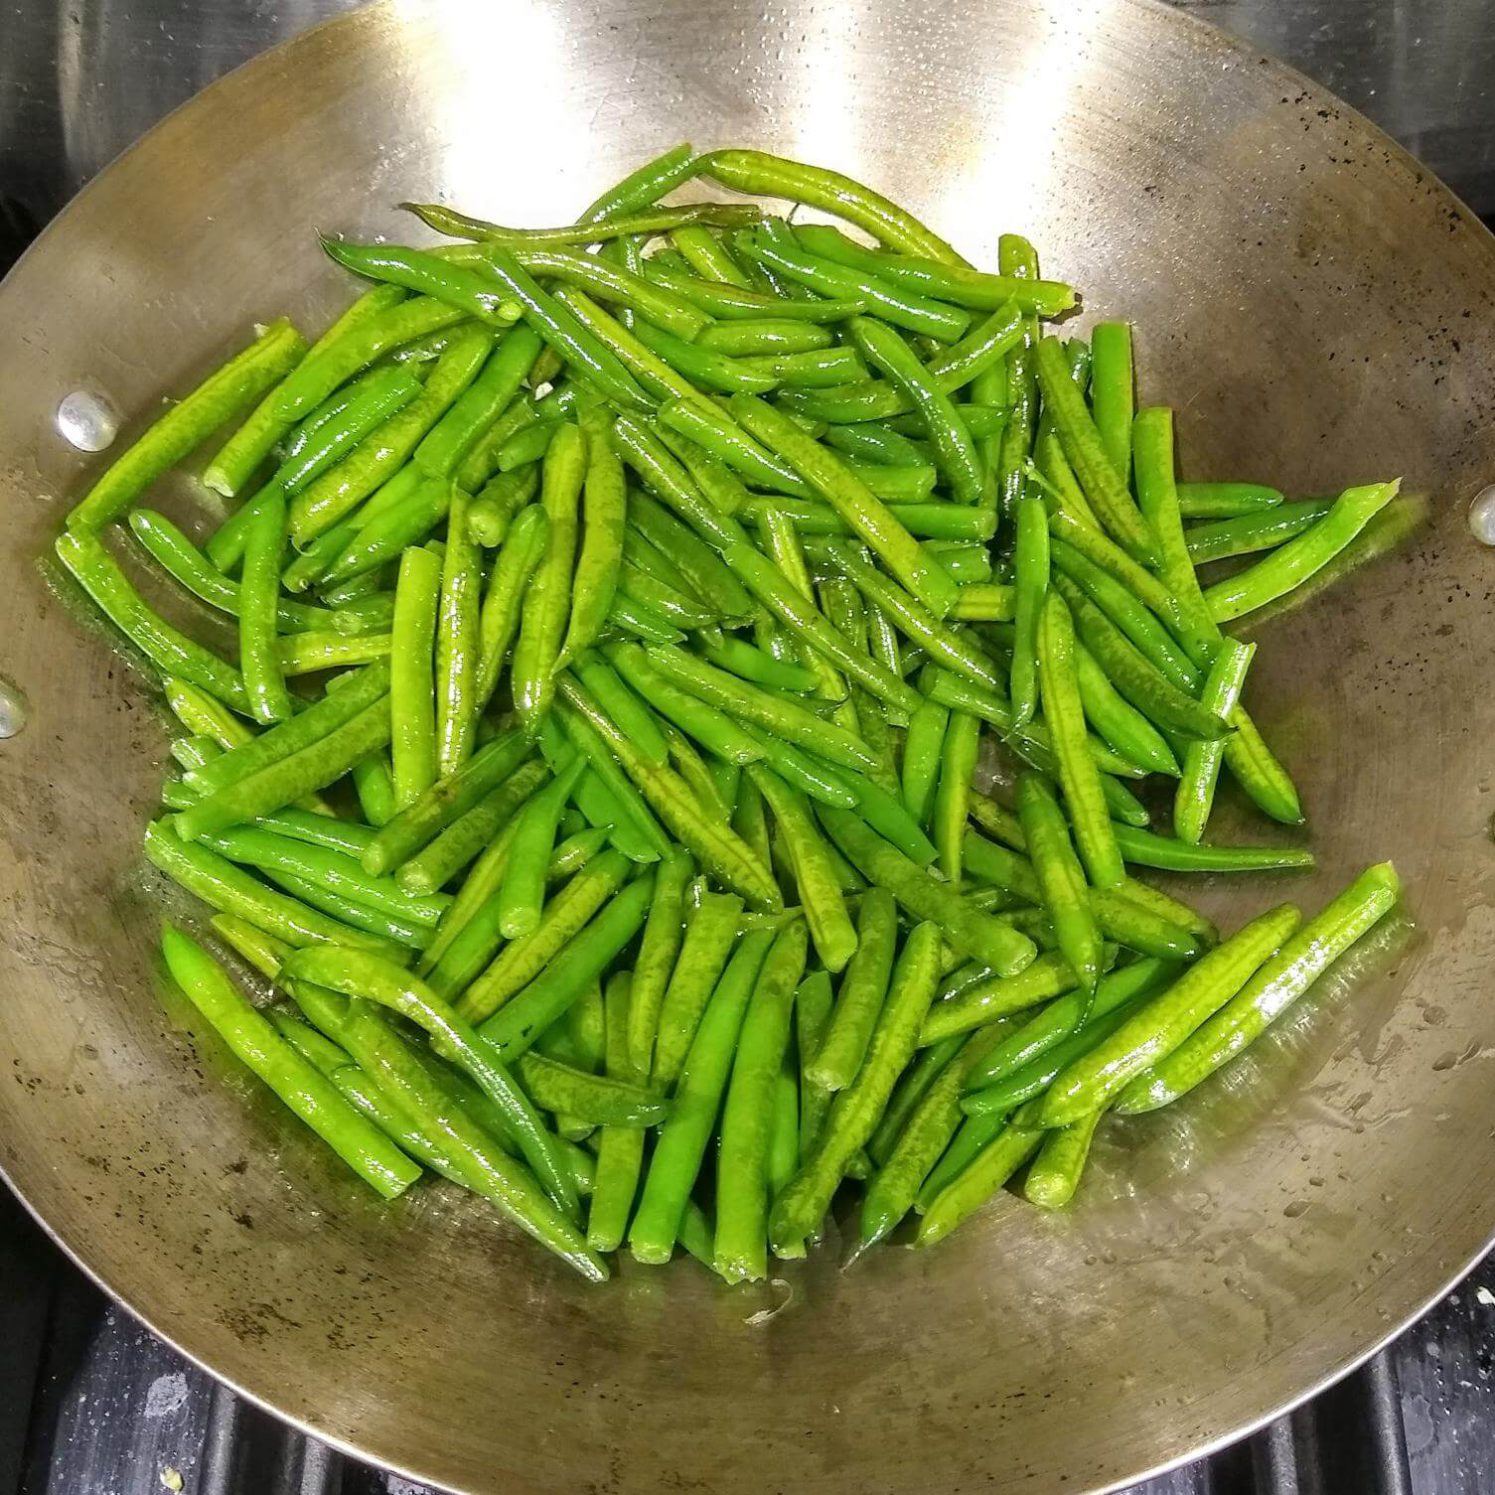 Frying the Green Beans